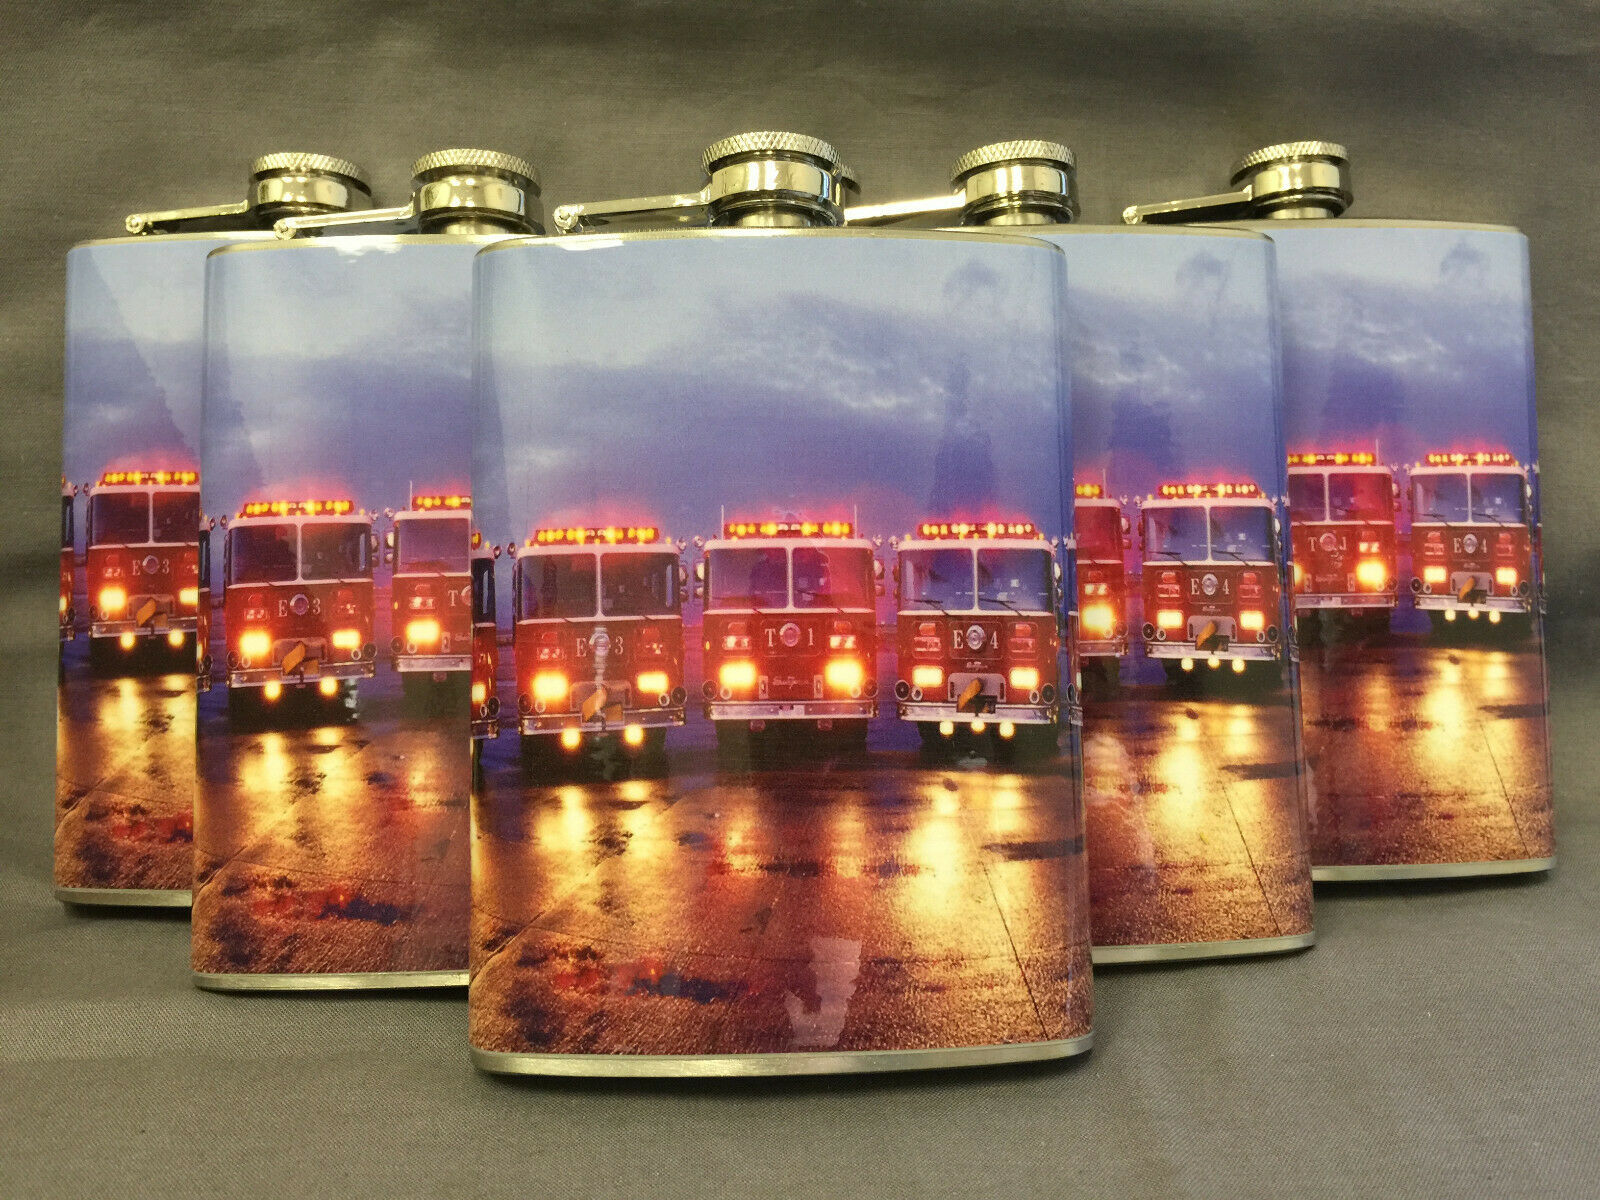 Set of 6 Firefighter Engines D3 Flasks 8oz Stainless Steel Hip Drinking Whiskey